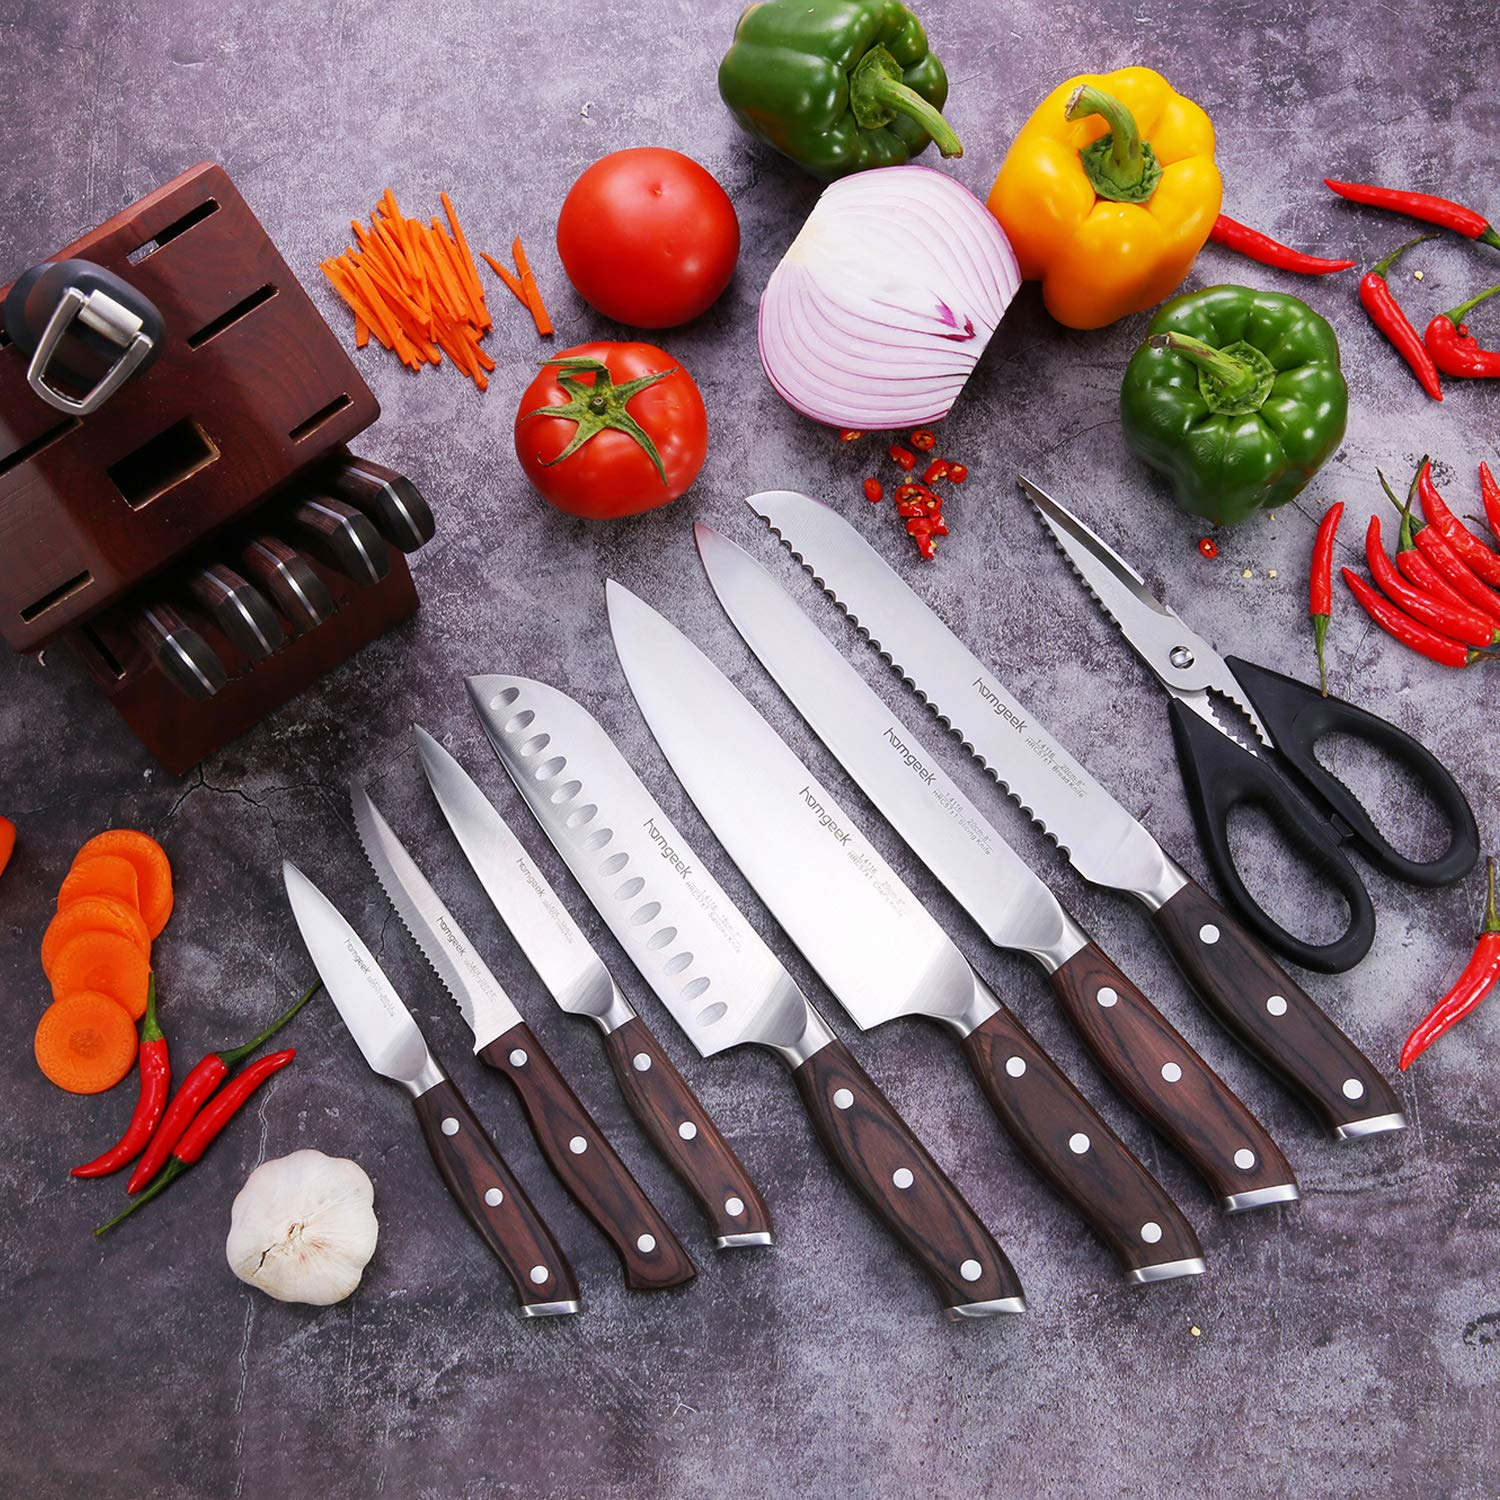 Kitchen Knife Set 15 Piece with Wooden Block Sharpener and Serrated Steak Knives, homgeek Professional High Carbon Steel Chef Knife Block Set Full-Tang Forged, German 1.4116 Steel, Pakkawood Handle by homgeek (Image #2)